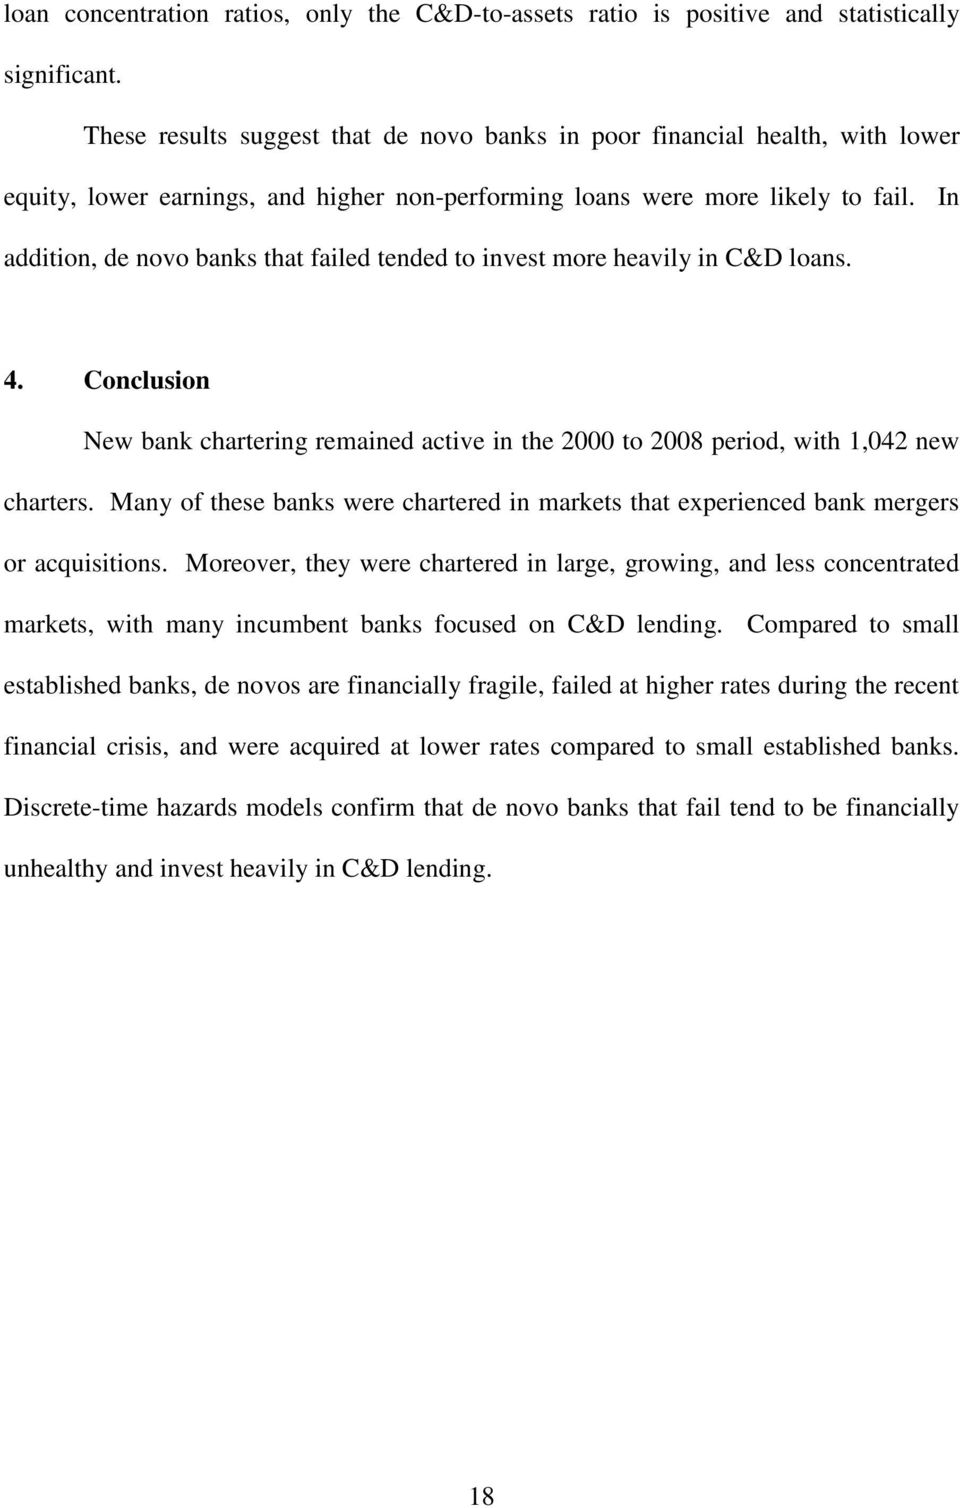 In addition, de novo banks that failed tended to invest more heavily in C&D loans. 4. Conclusion New bank chartering remained active in the 2000 to 2008 period, with 1,042 new charters.